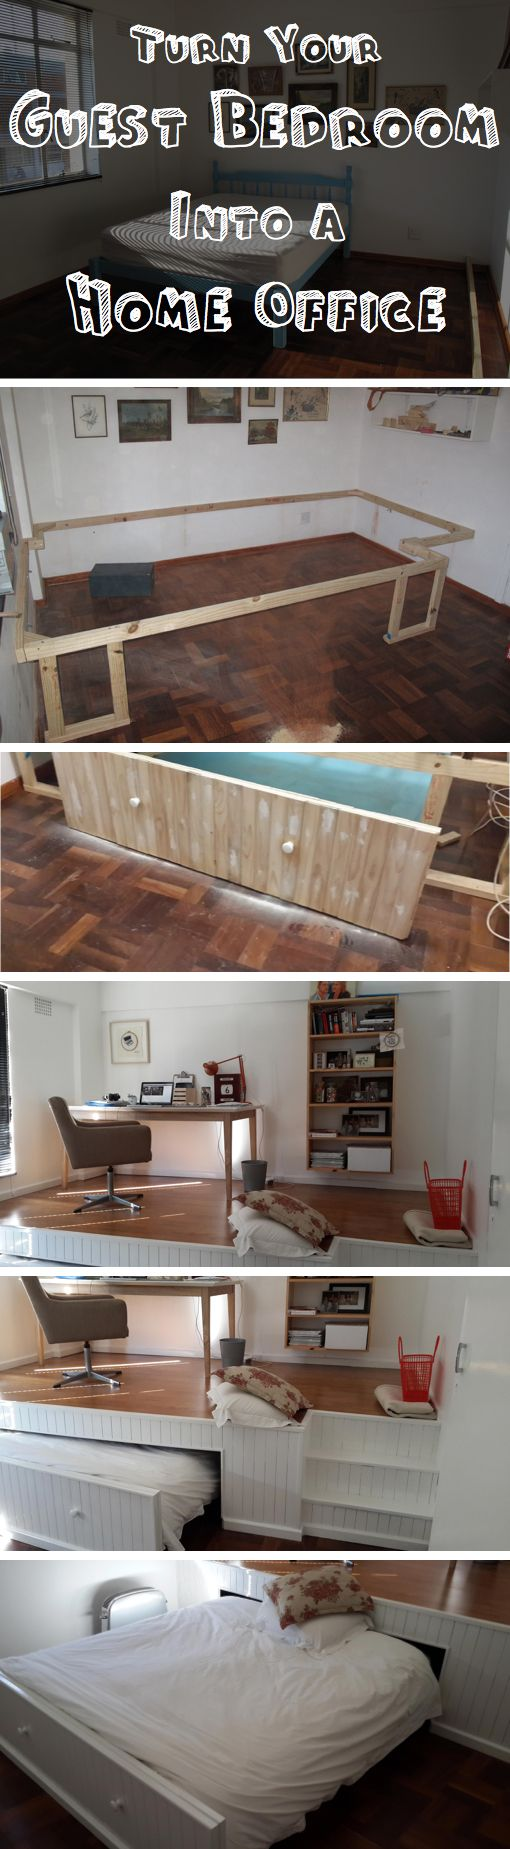 Home bedroom guest room hide a bed cabinet - Turn Your Guest Bedroom Into A Home Office Quickly And Easily